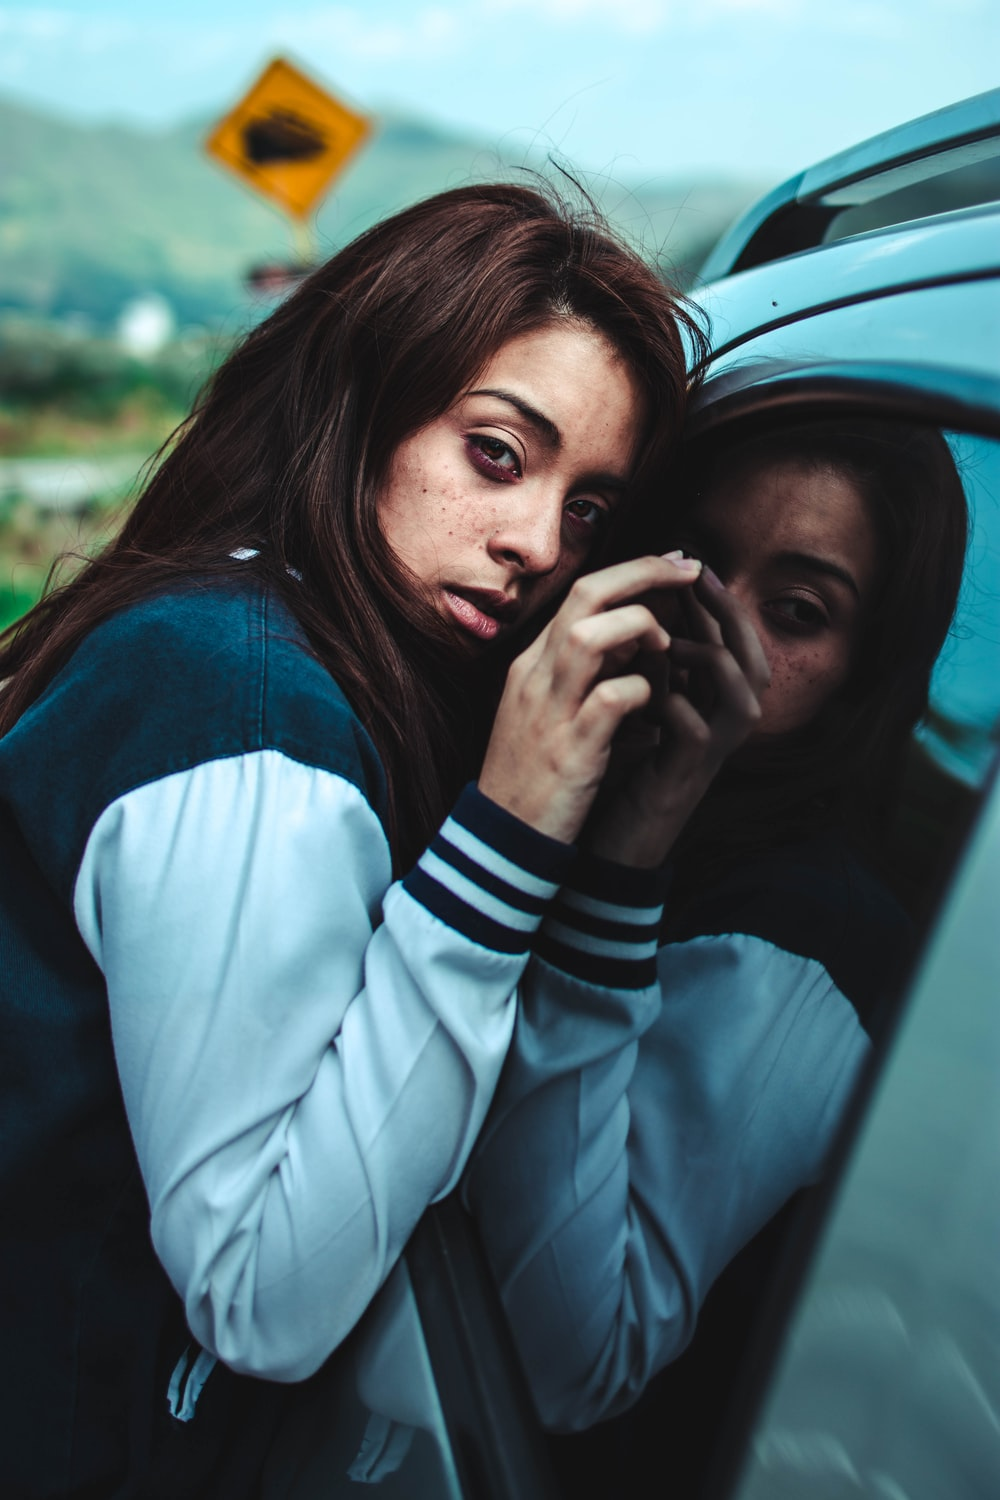 woman leaning in car mirror